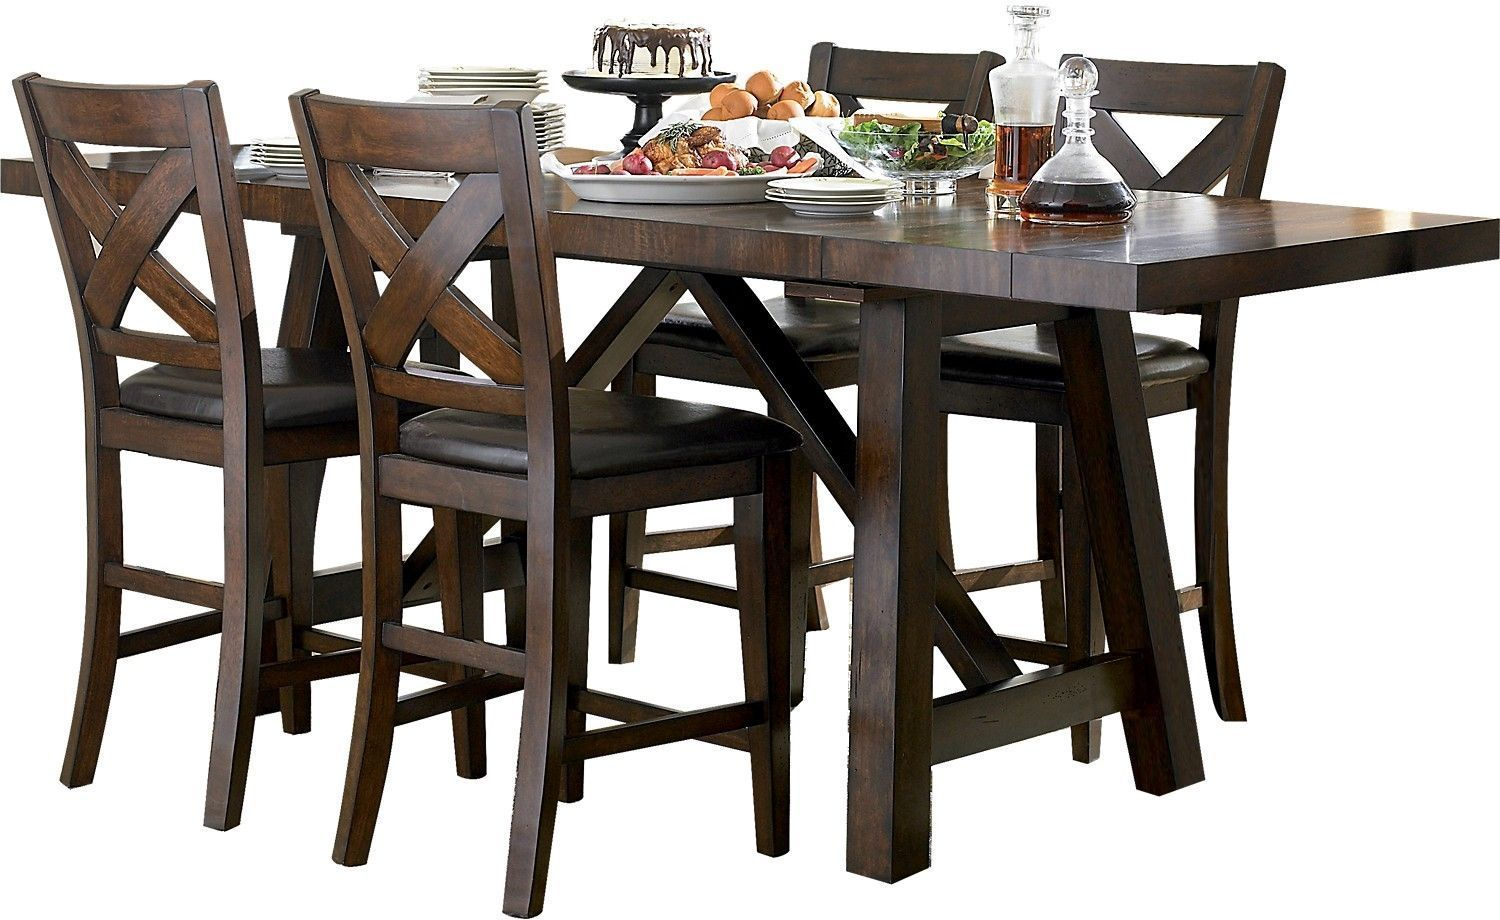 5 Piece Counter Height Dining Set Dhp Worldwide Outlet Counter